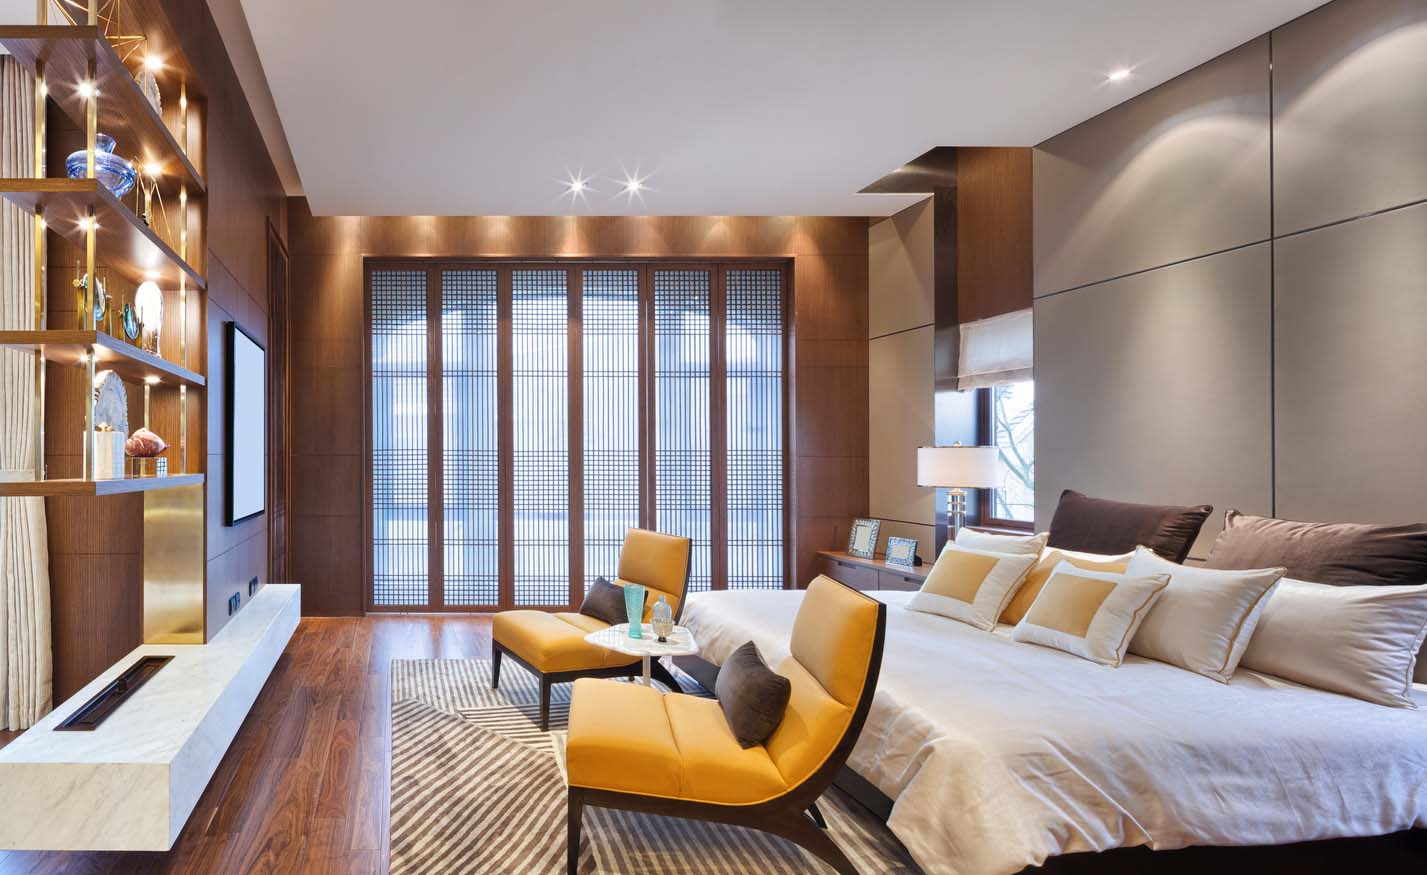 Choosing the Right Colors for Your Hotel Remodel